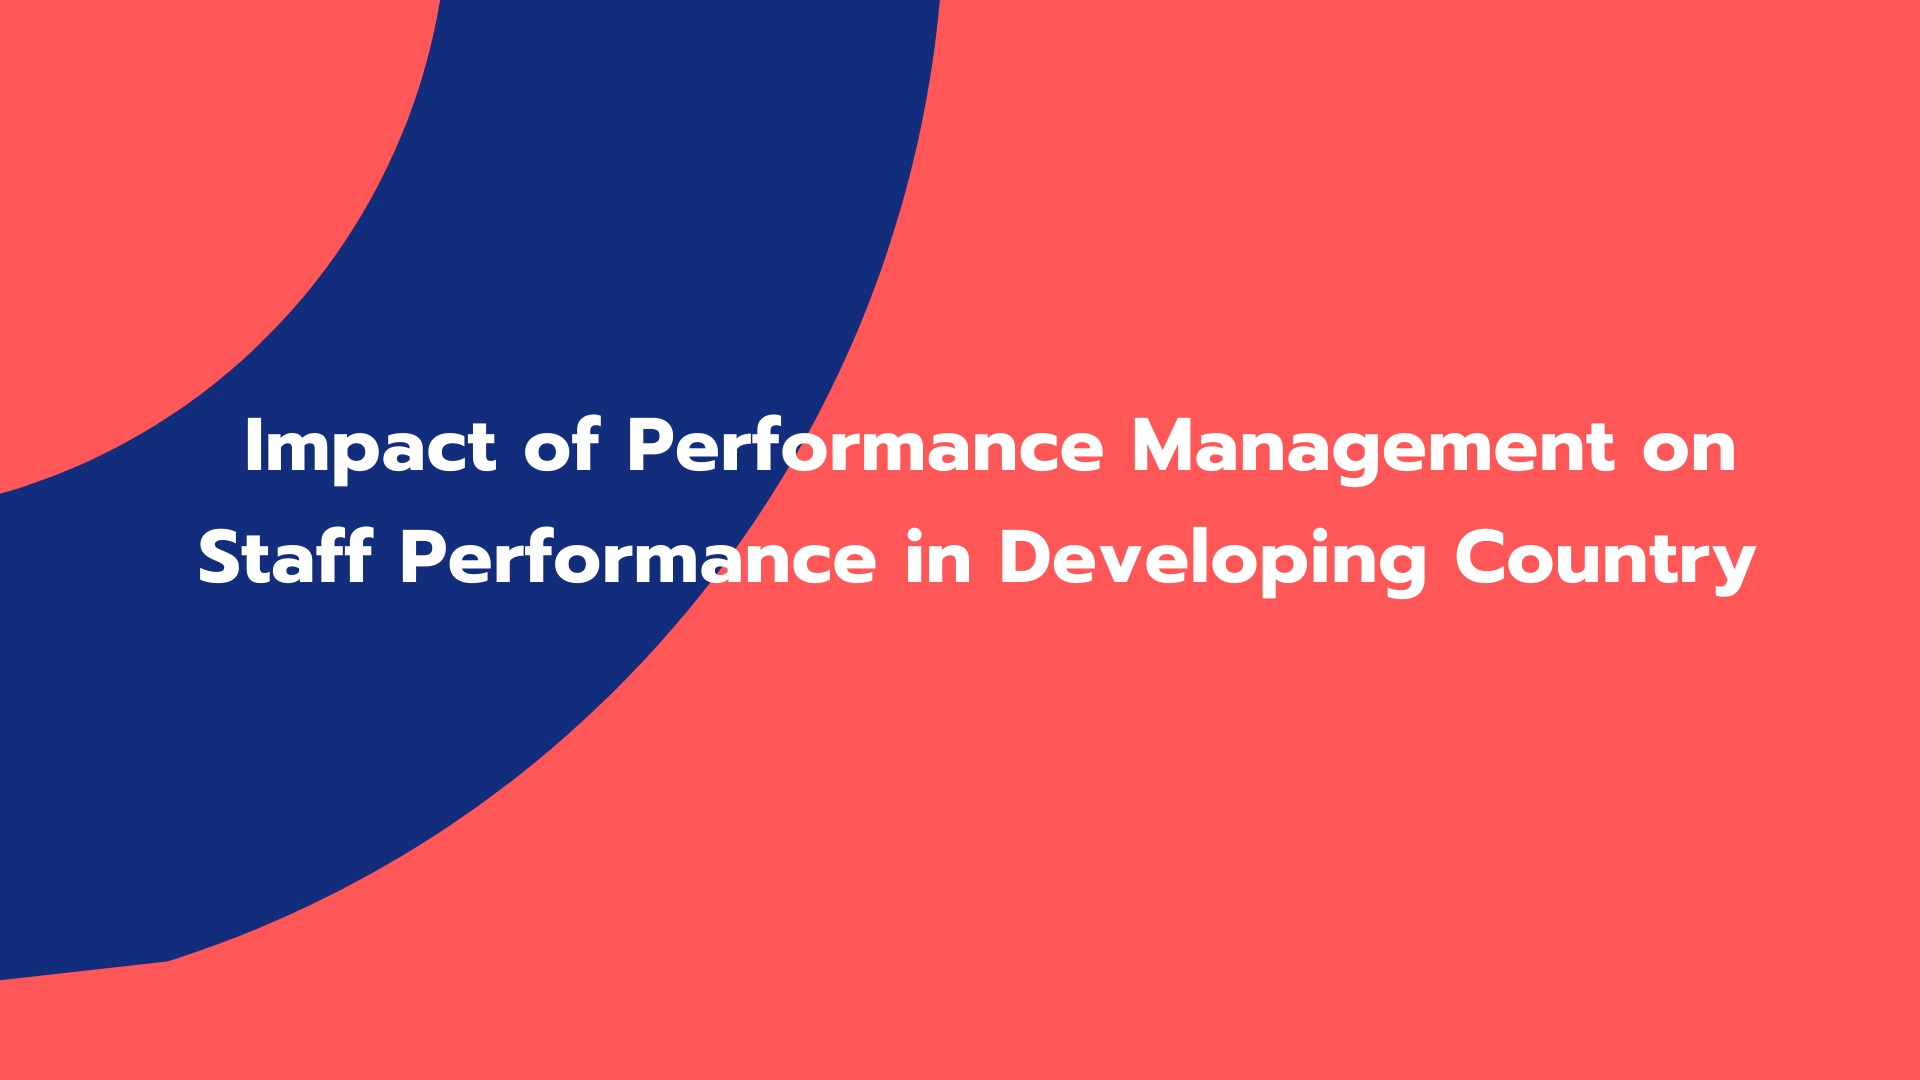 Impact of Performance Management on Staff Performance in Developing Country